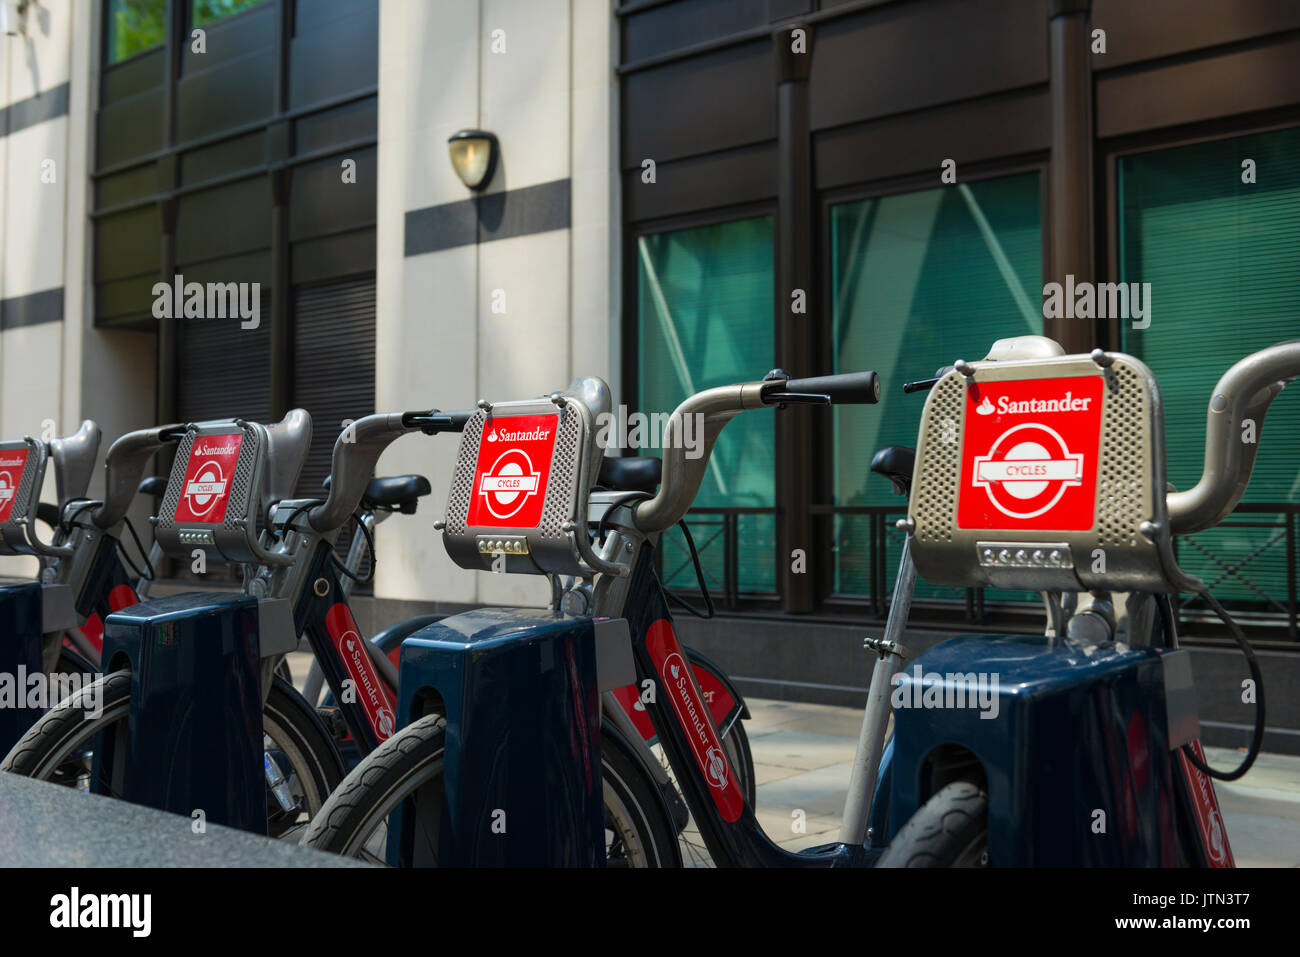 UK London City Aldgate St Mary Axe Santander bikes cycles bicycles hire rental park station detail signage logo red livery marketing Transport for TFL - Stock Image